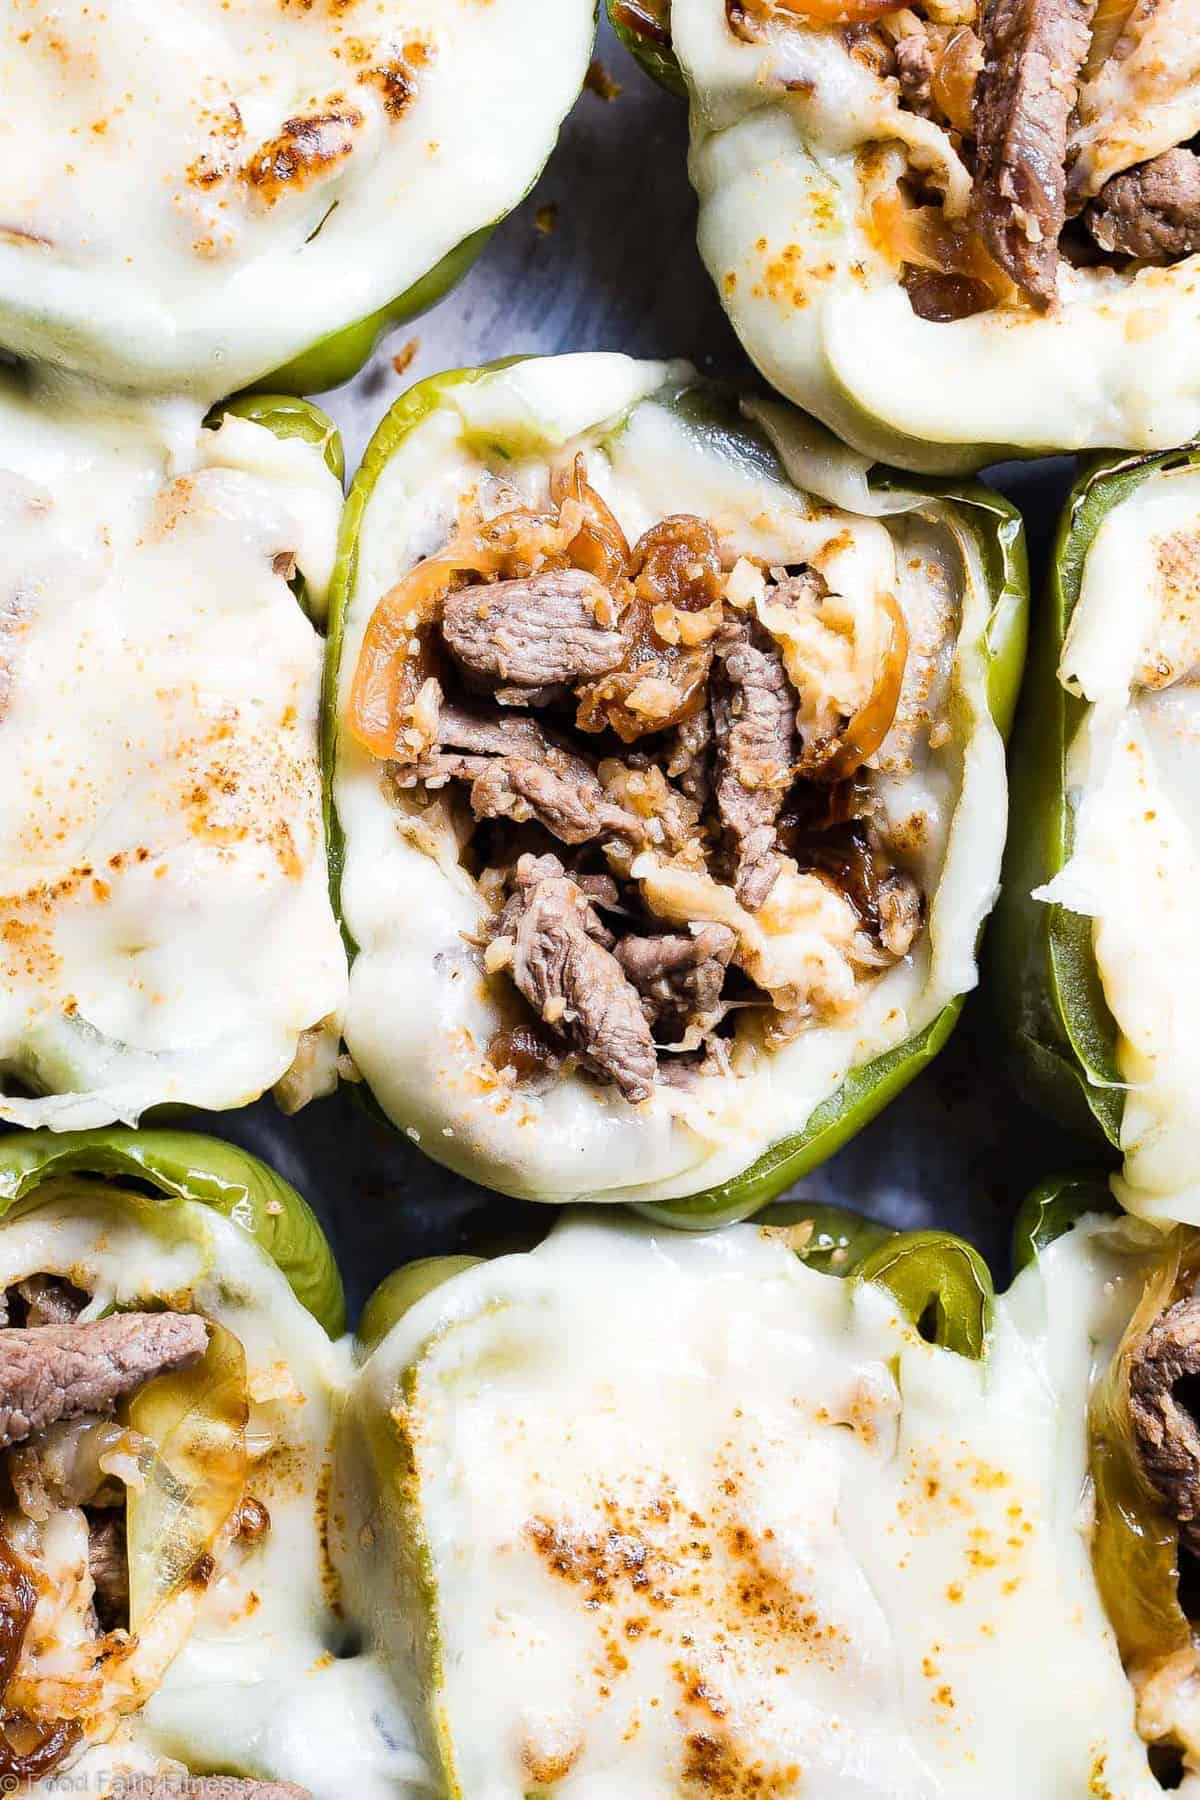 Cheesesteak Stuffed Peppers arranged on a backing sheet